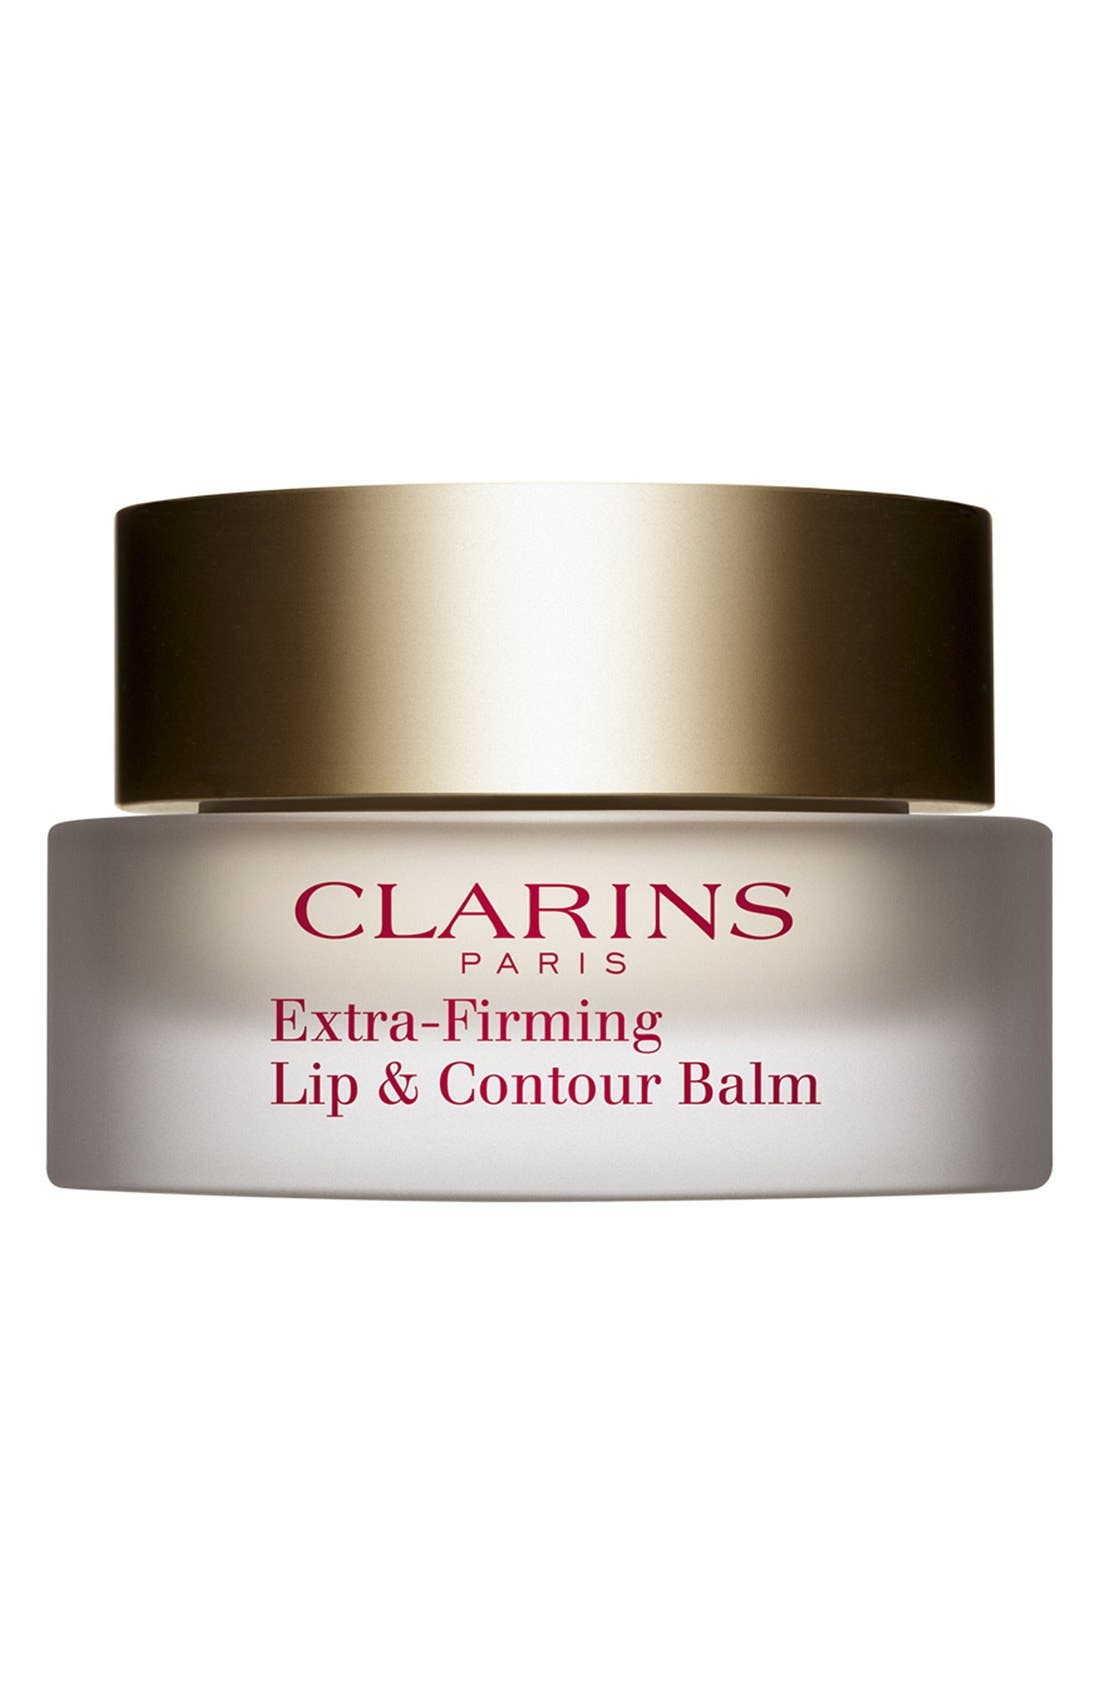 Extra-Firming Lip & Contour Balm,                             Main thumbnail 1, color,                             000